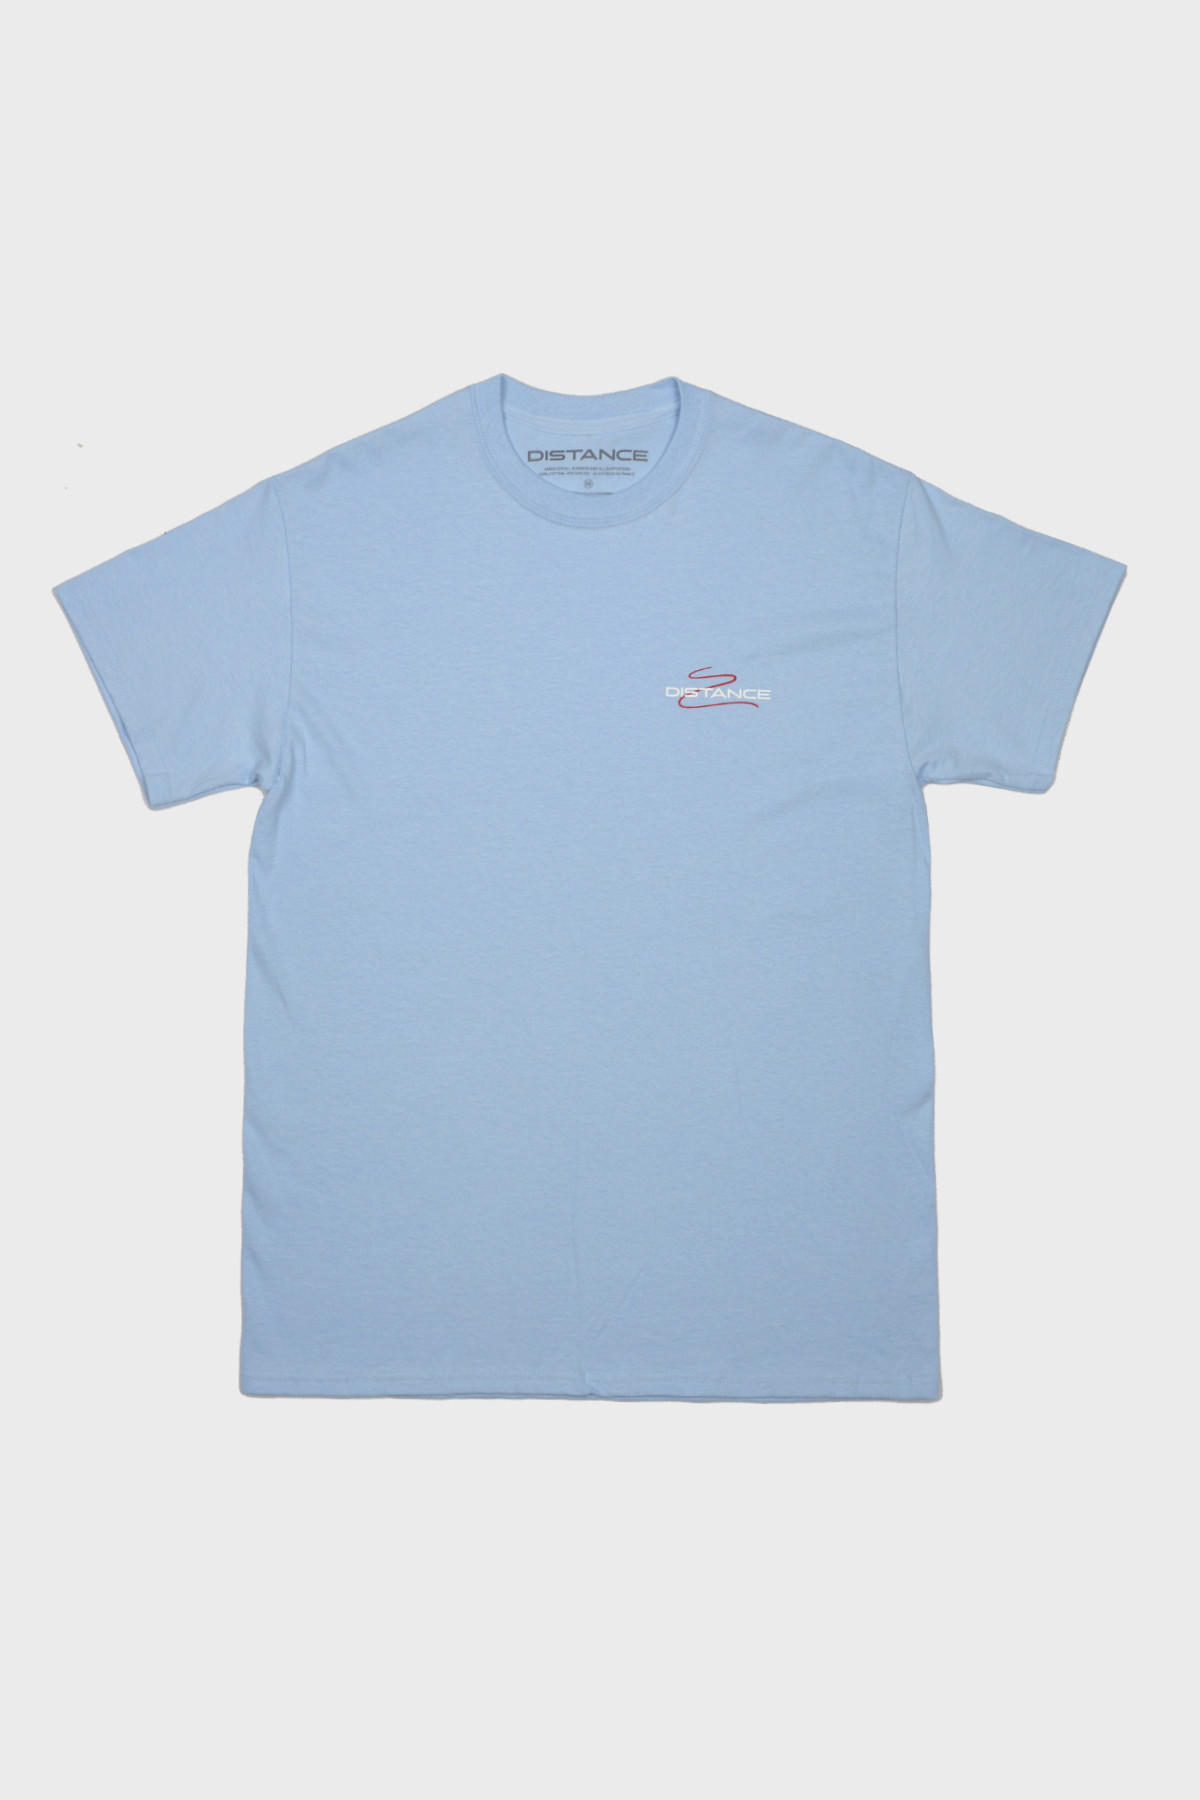 Distance - Squiggle Tee - Blue Red